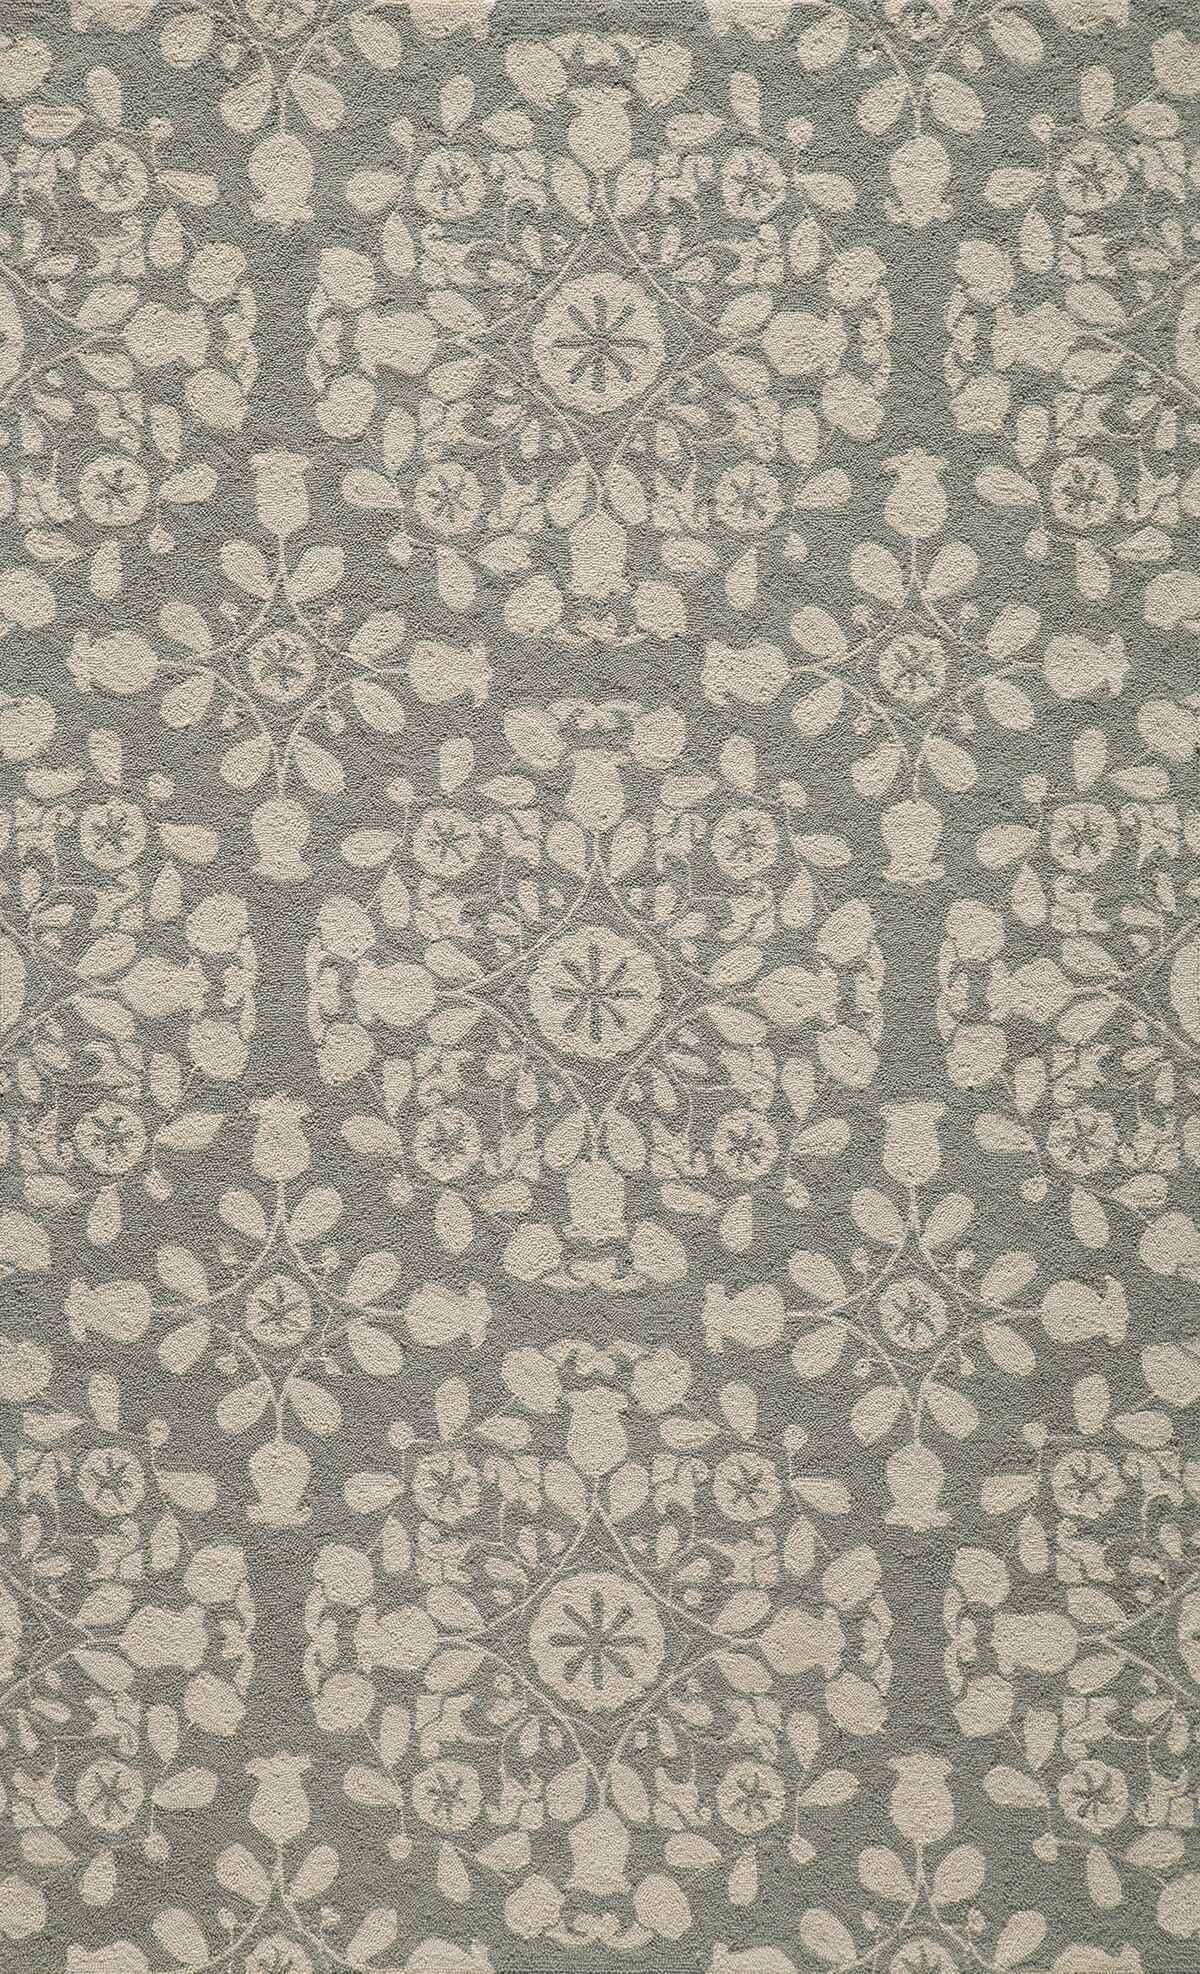 Roeser Gray Area Rug Rug Size: Rectangle 8' x 10'